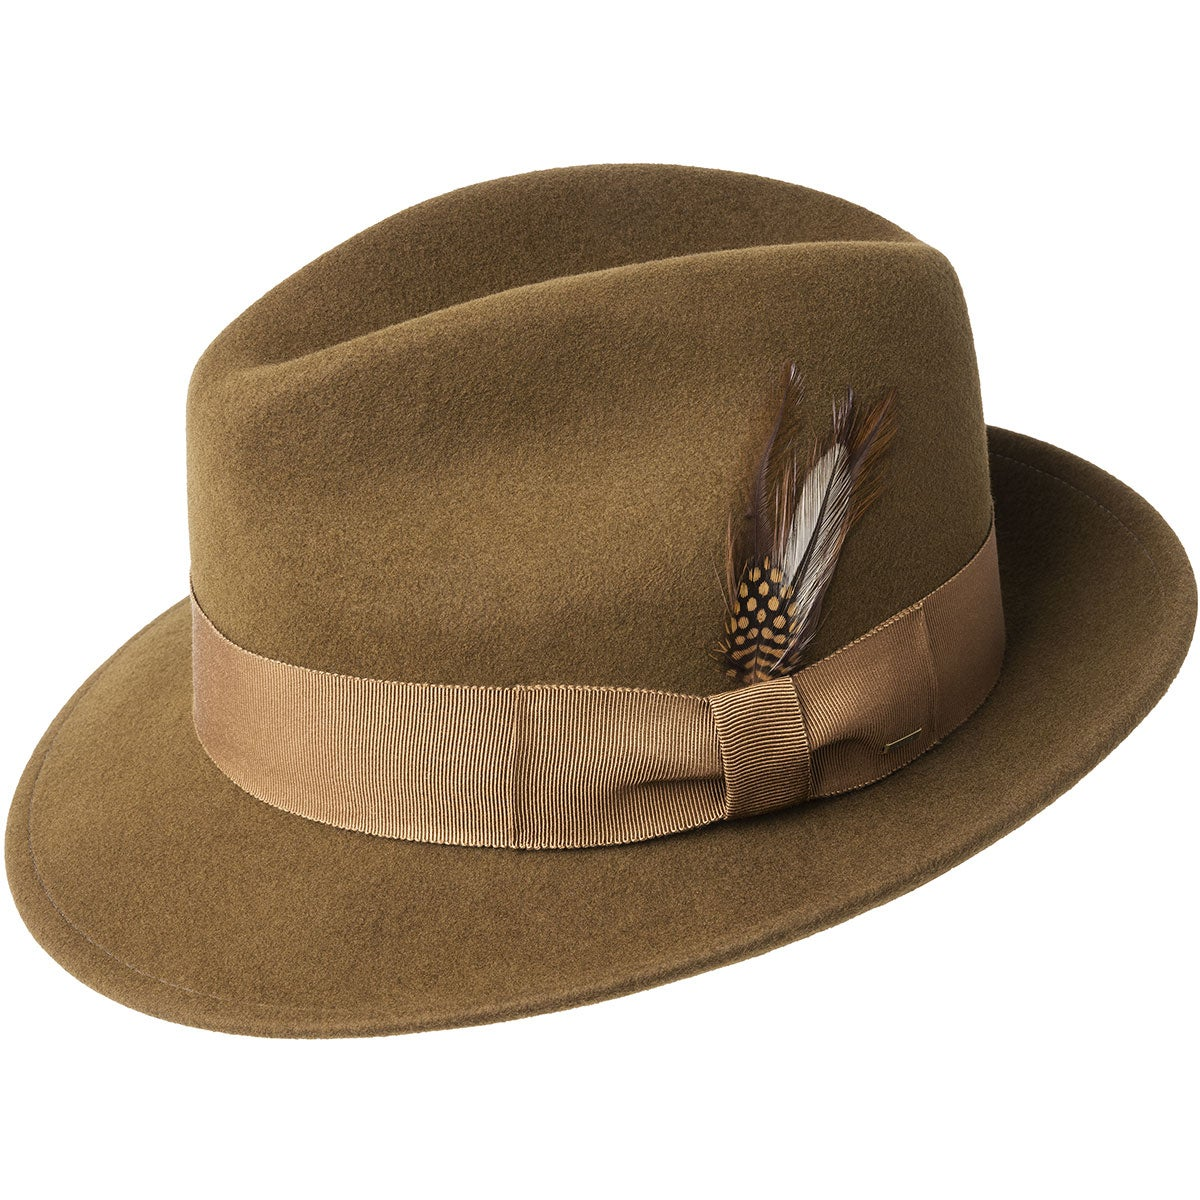 Bailey of Hollywood Blixen Limited Edition Fedora in Tobacco